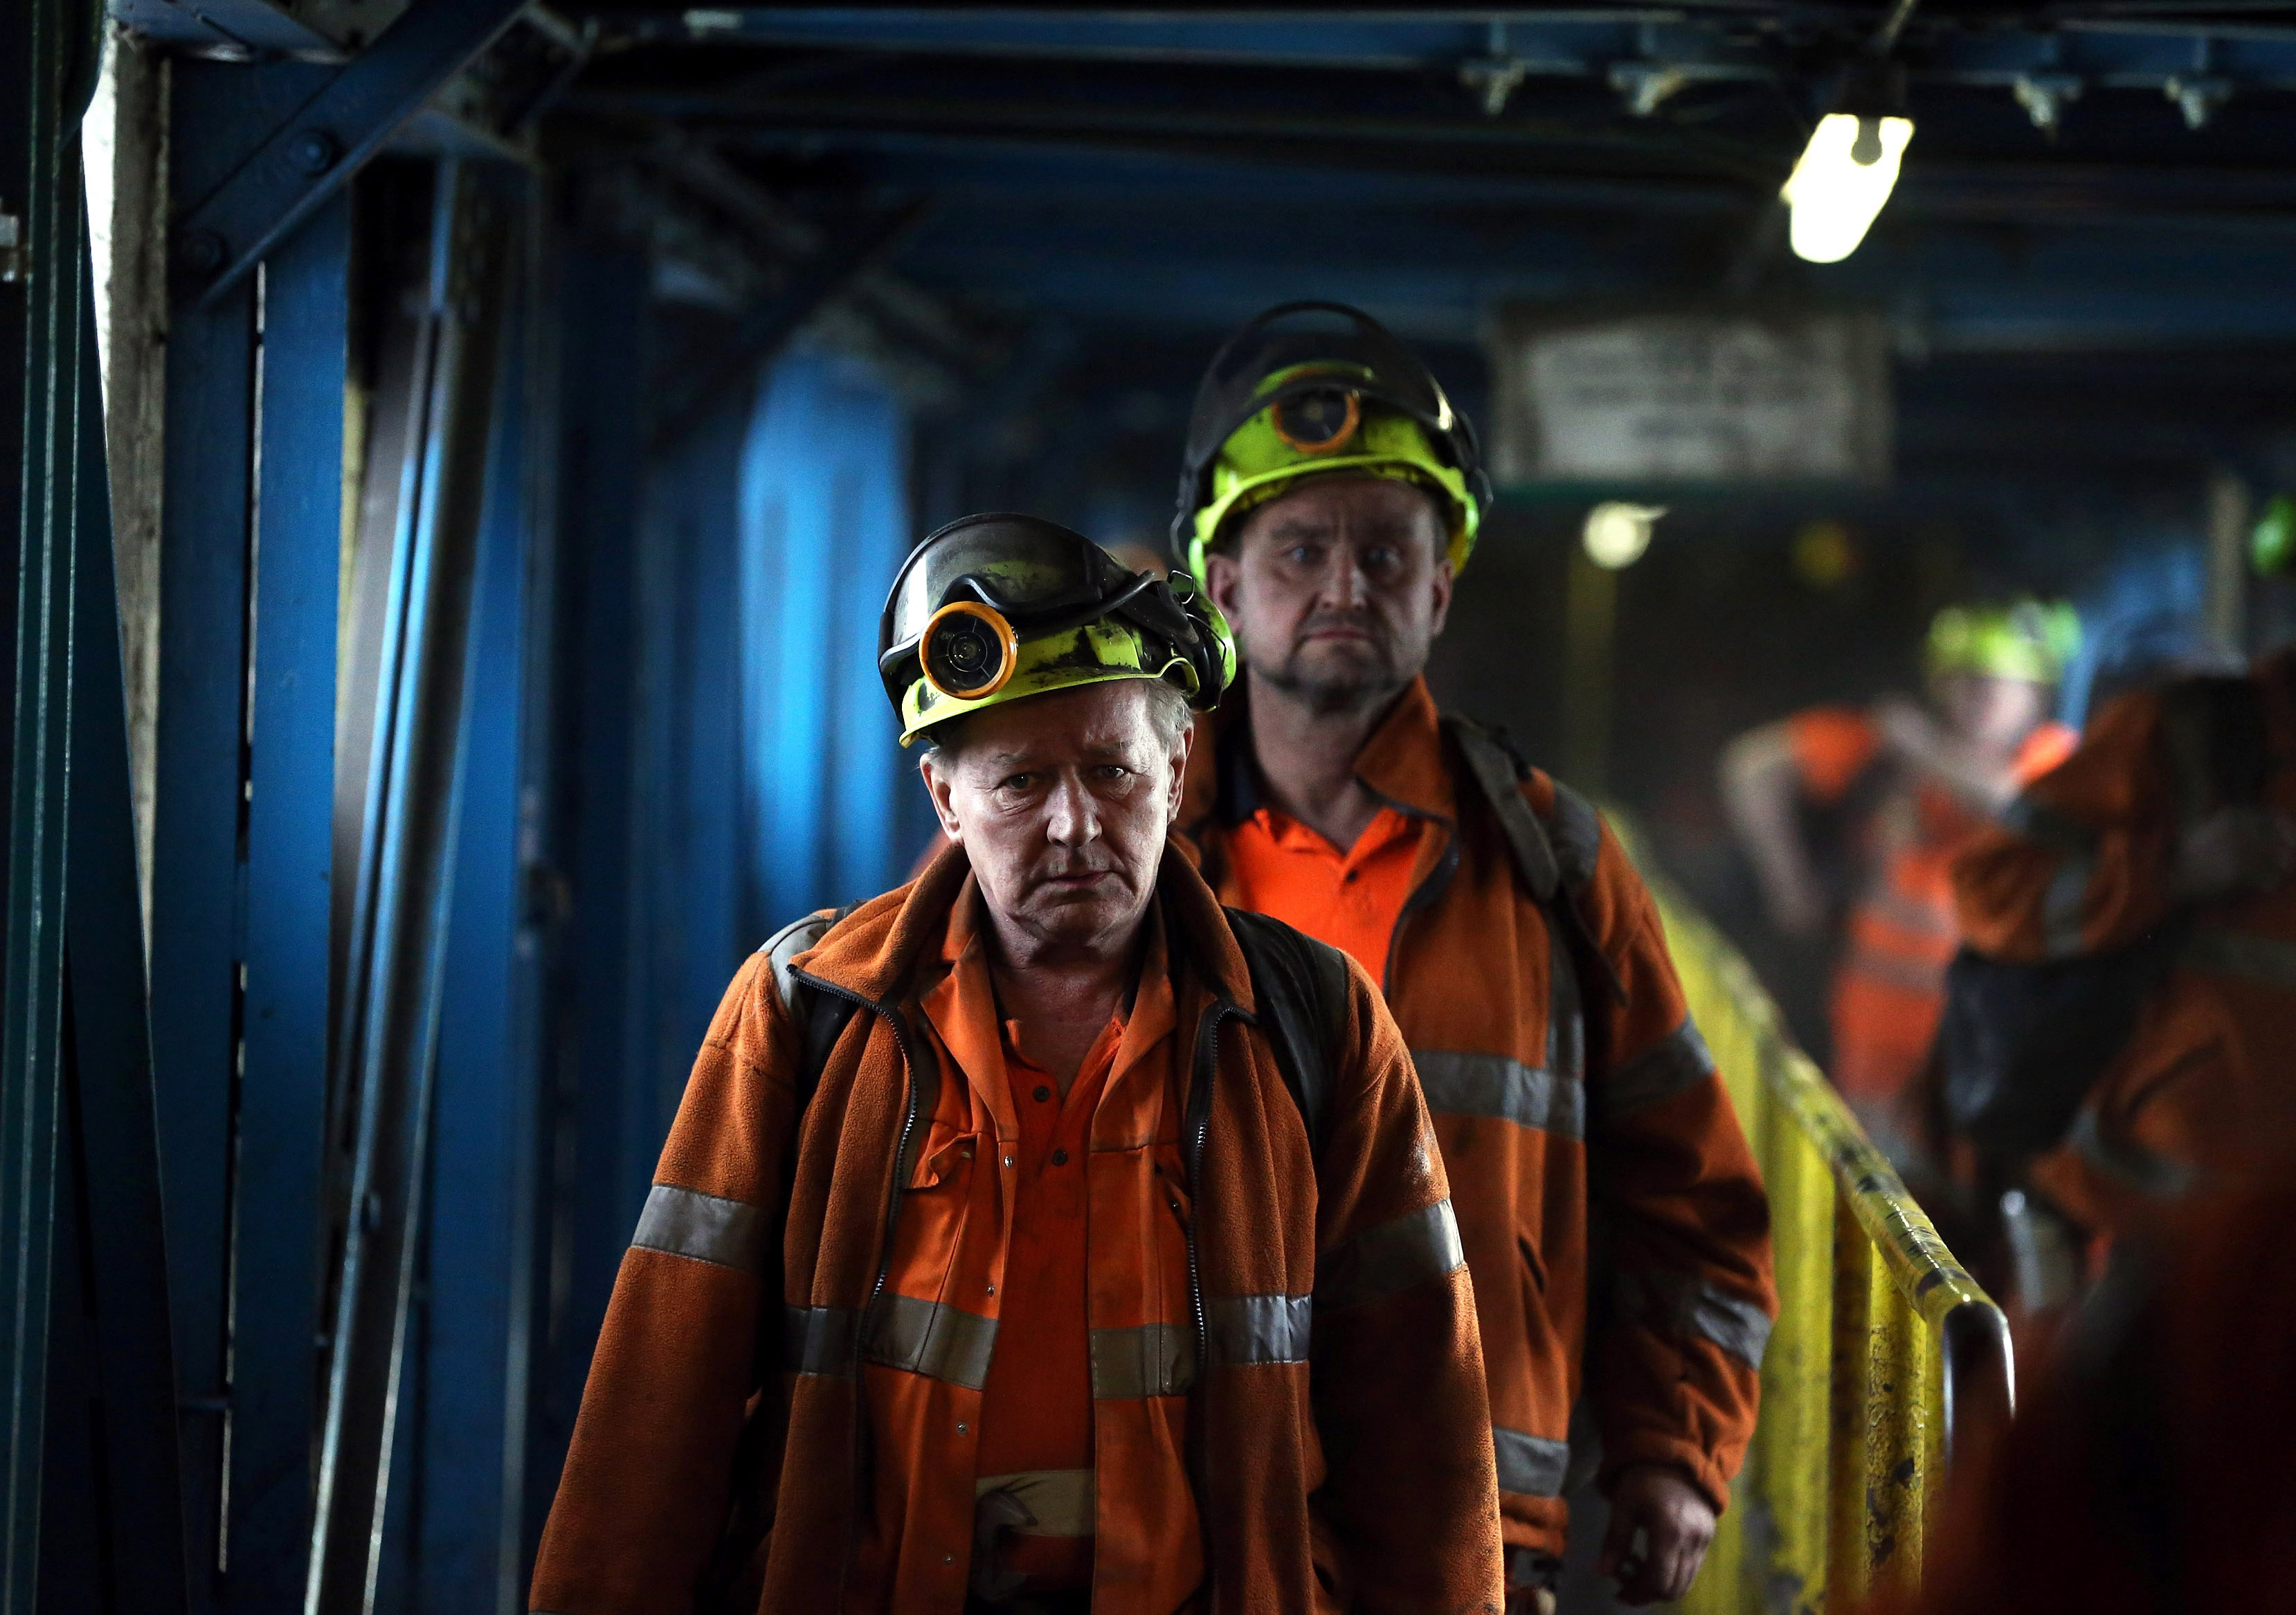 Miners leave after working the final shift at Kellingley Colliery on its last day of operation in north Yorkshire, England